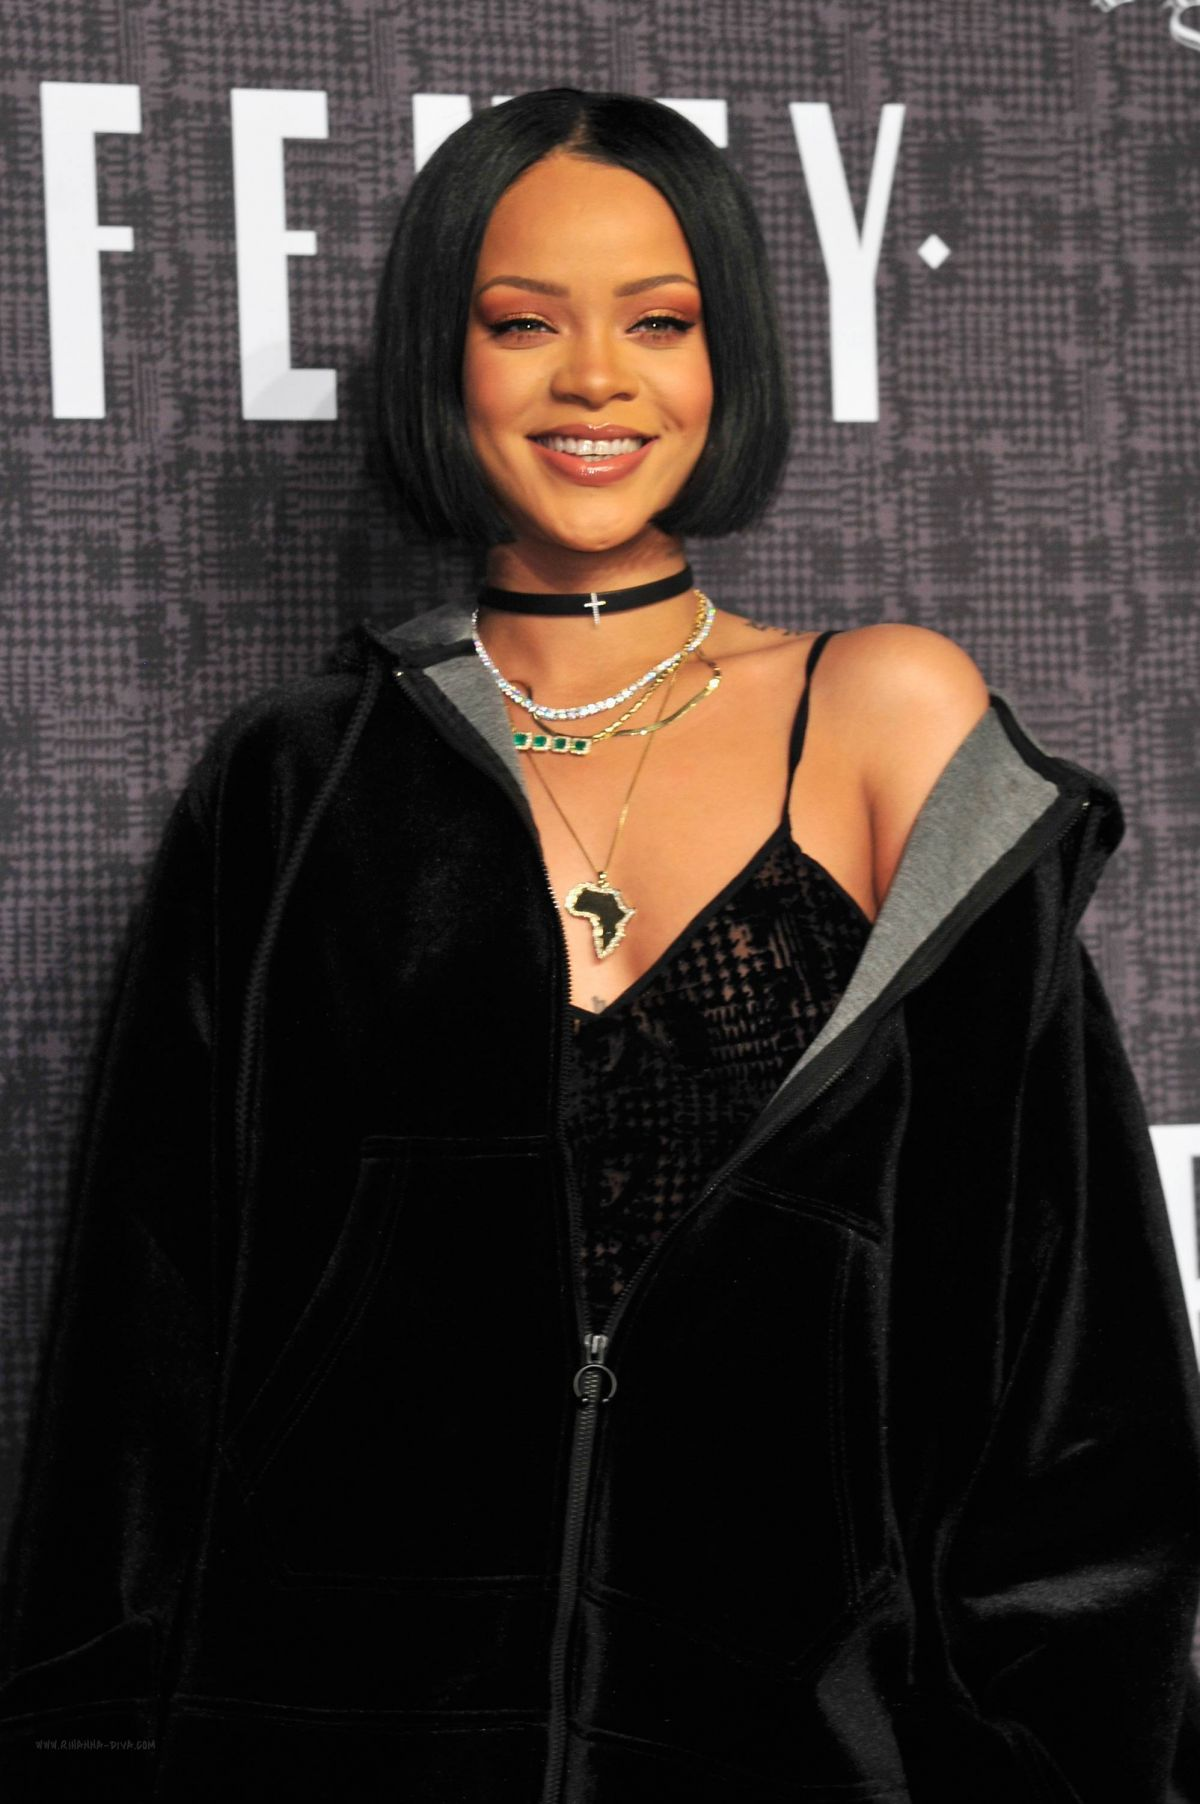 rihanna at fenty puma fall 2016 collection show in new. Black Bedroom Furniture Sets. Home Design Ideas